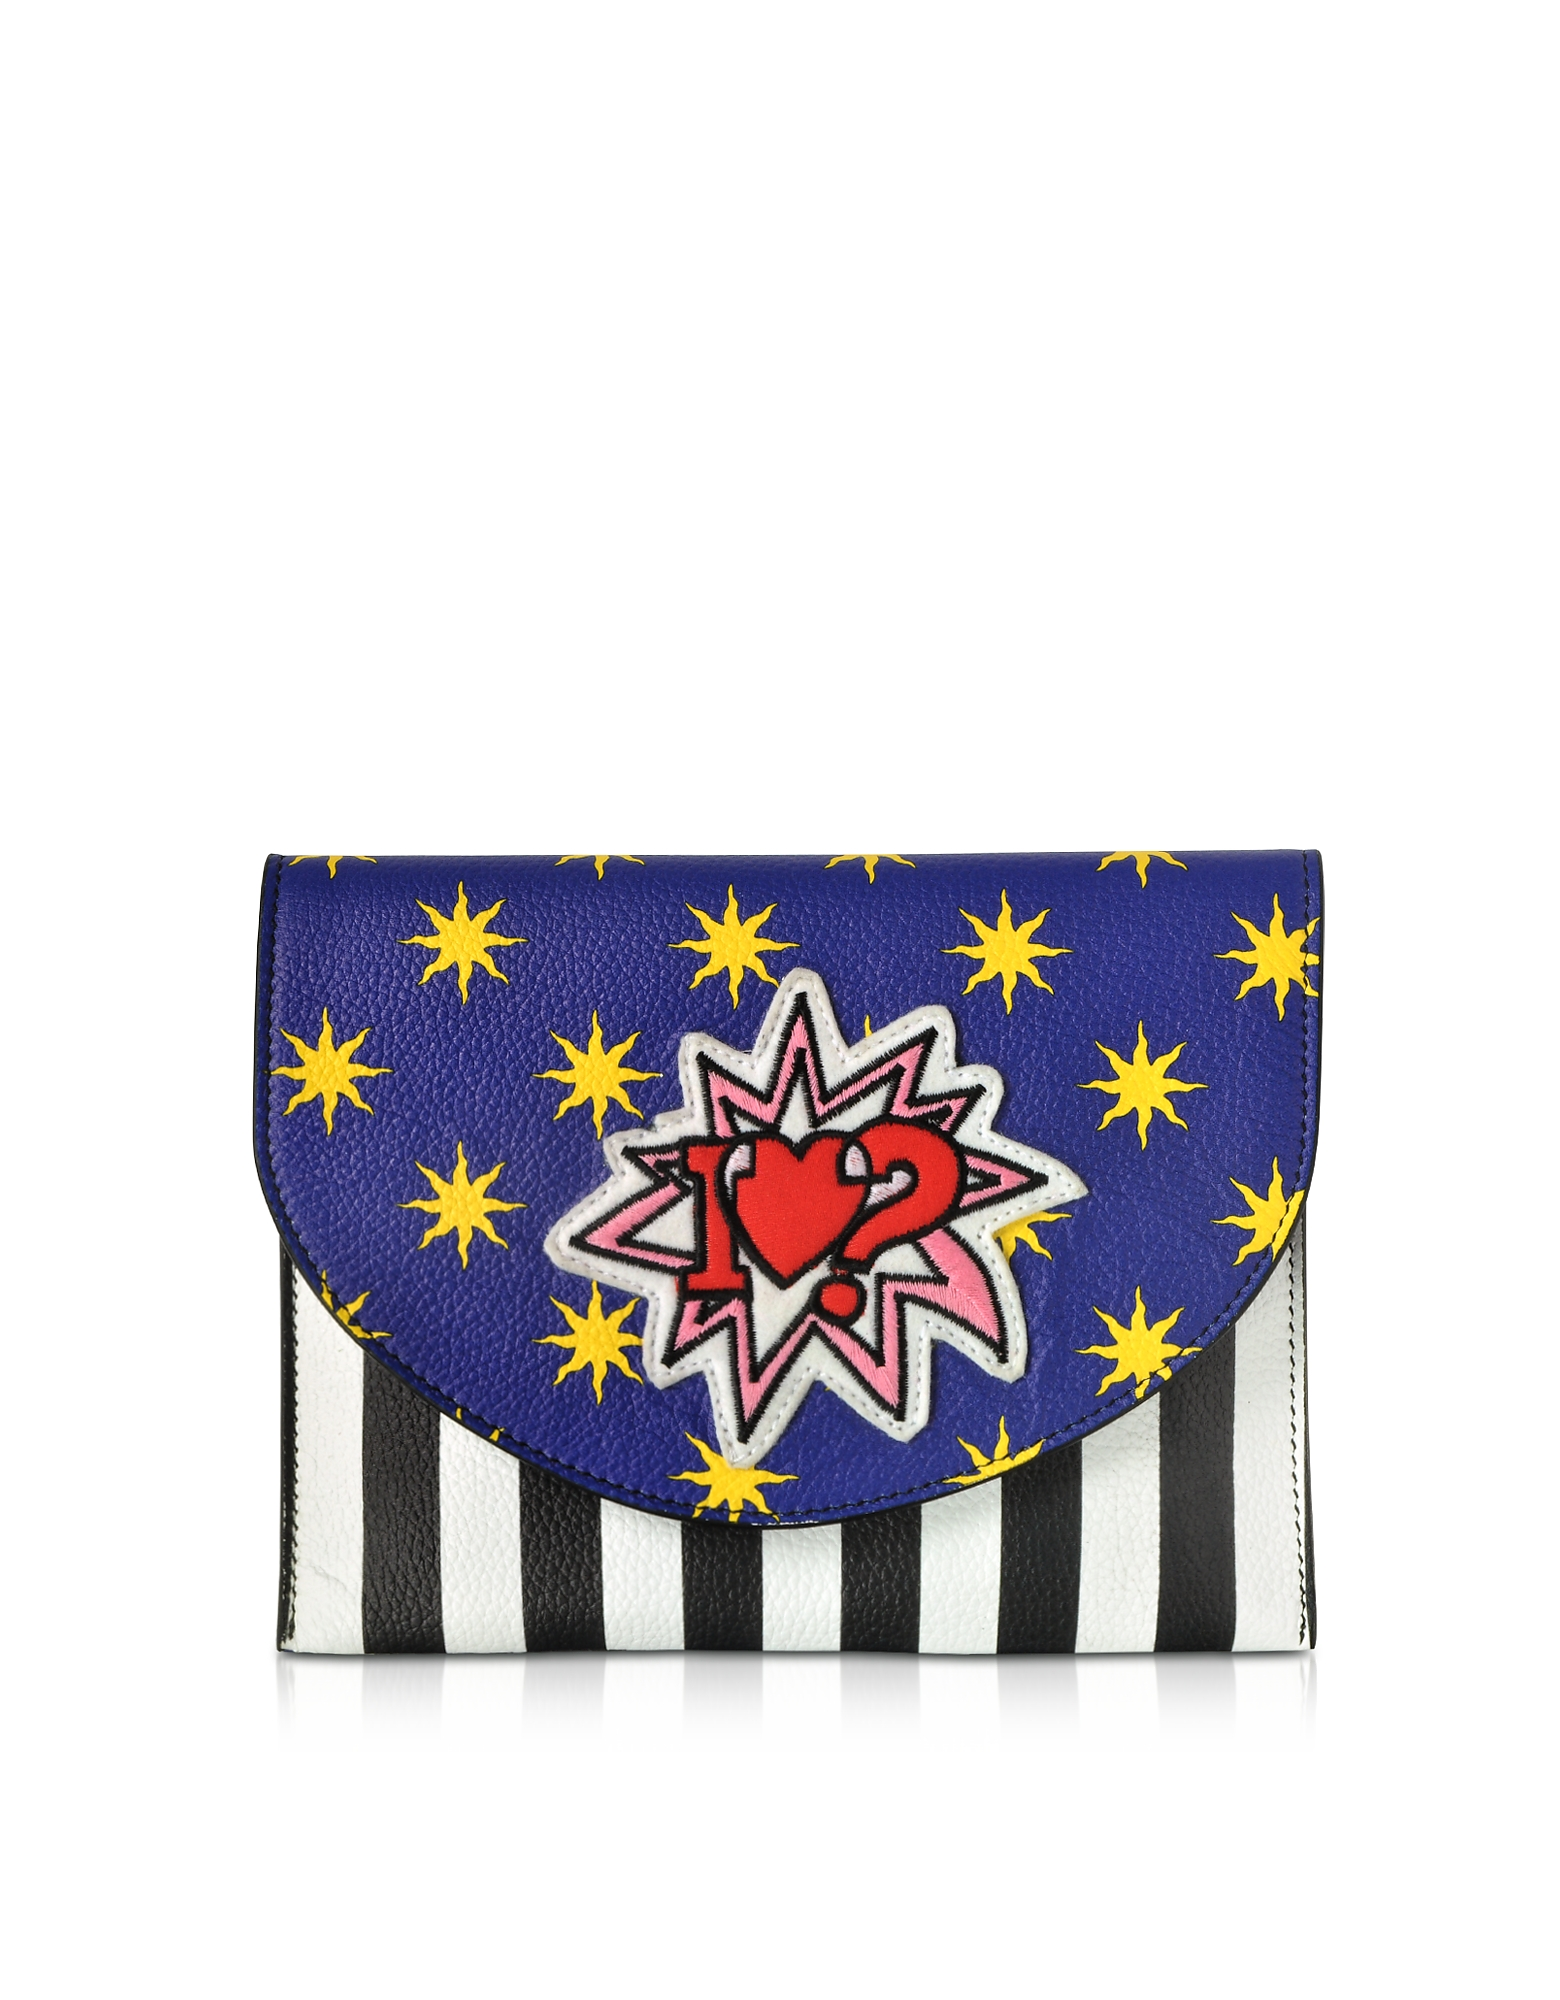 Alessandro Enriquez Handbags, Miracle Pop Love Leather Clutch